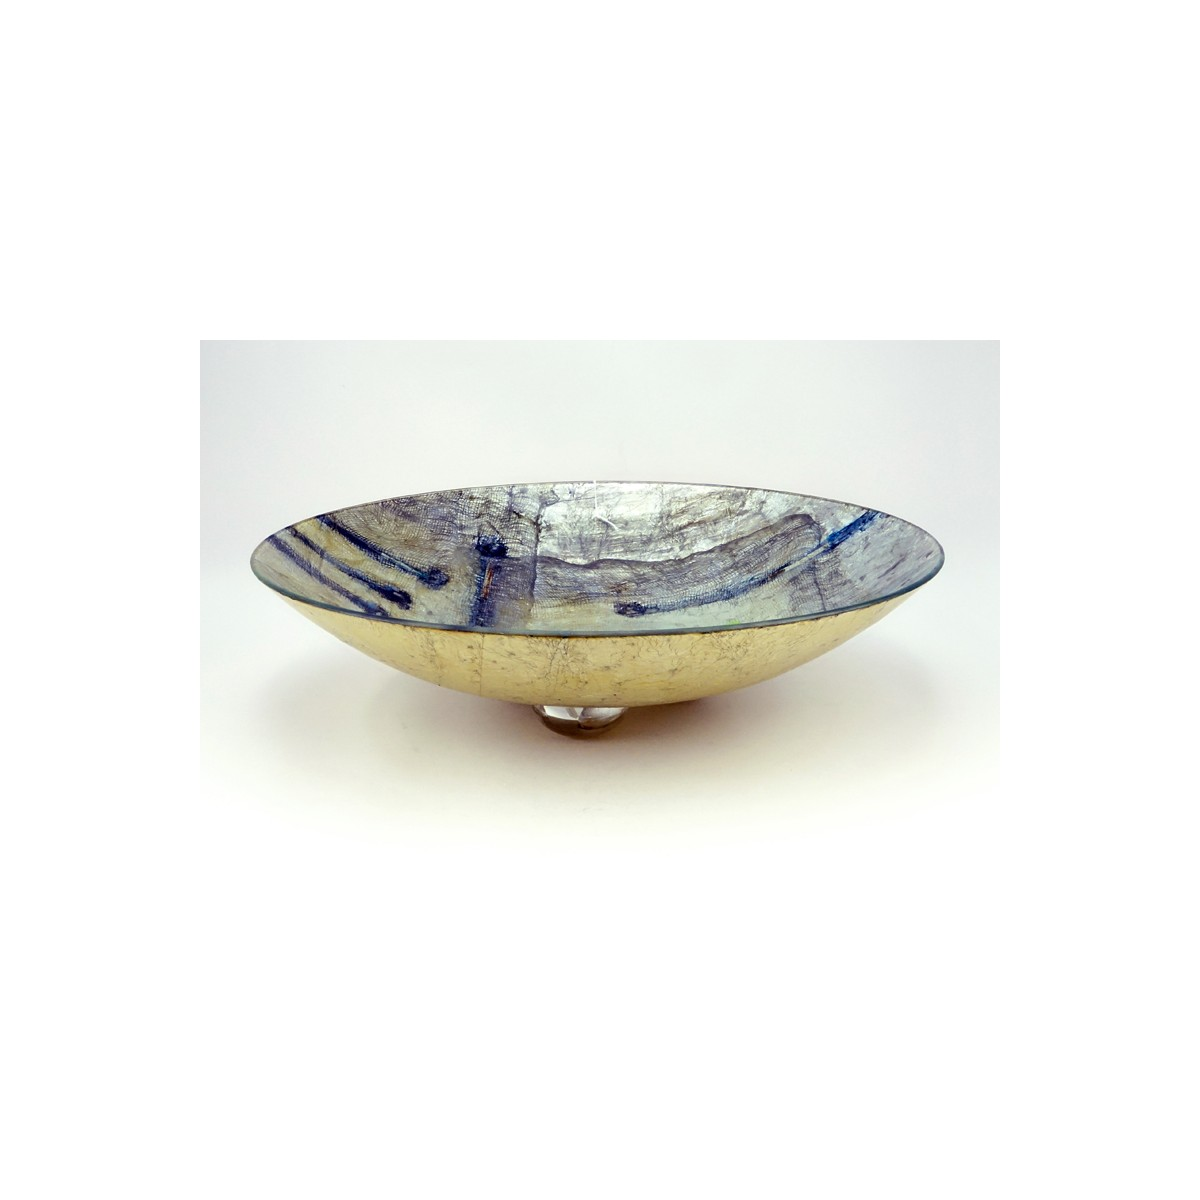 Very Large Contemporary Glass Decoupage Footed Center Bowl. Unsigned. Good condition. Measures 6-1/